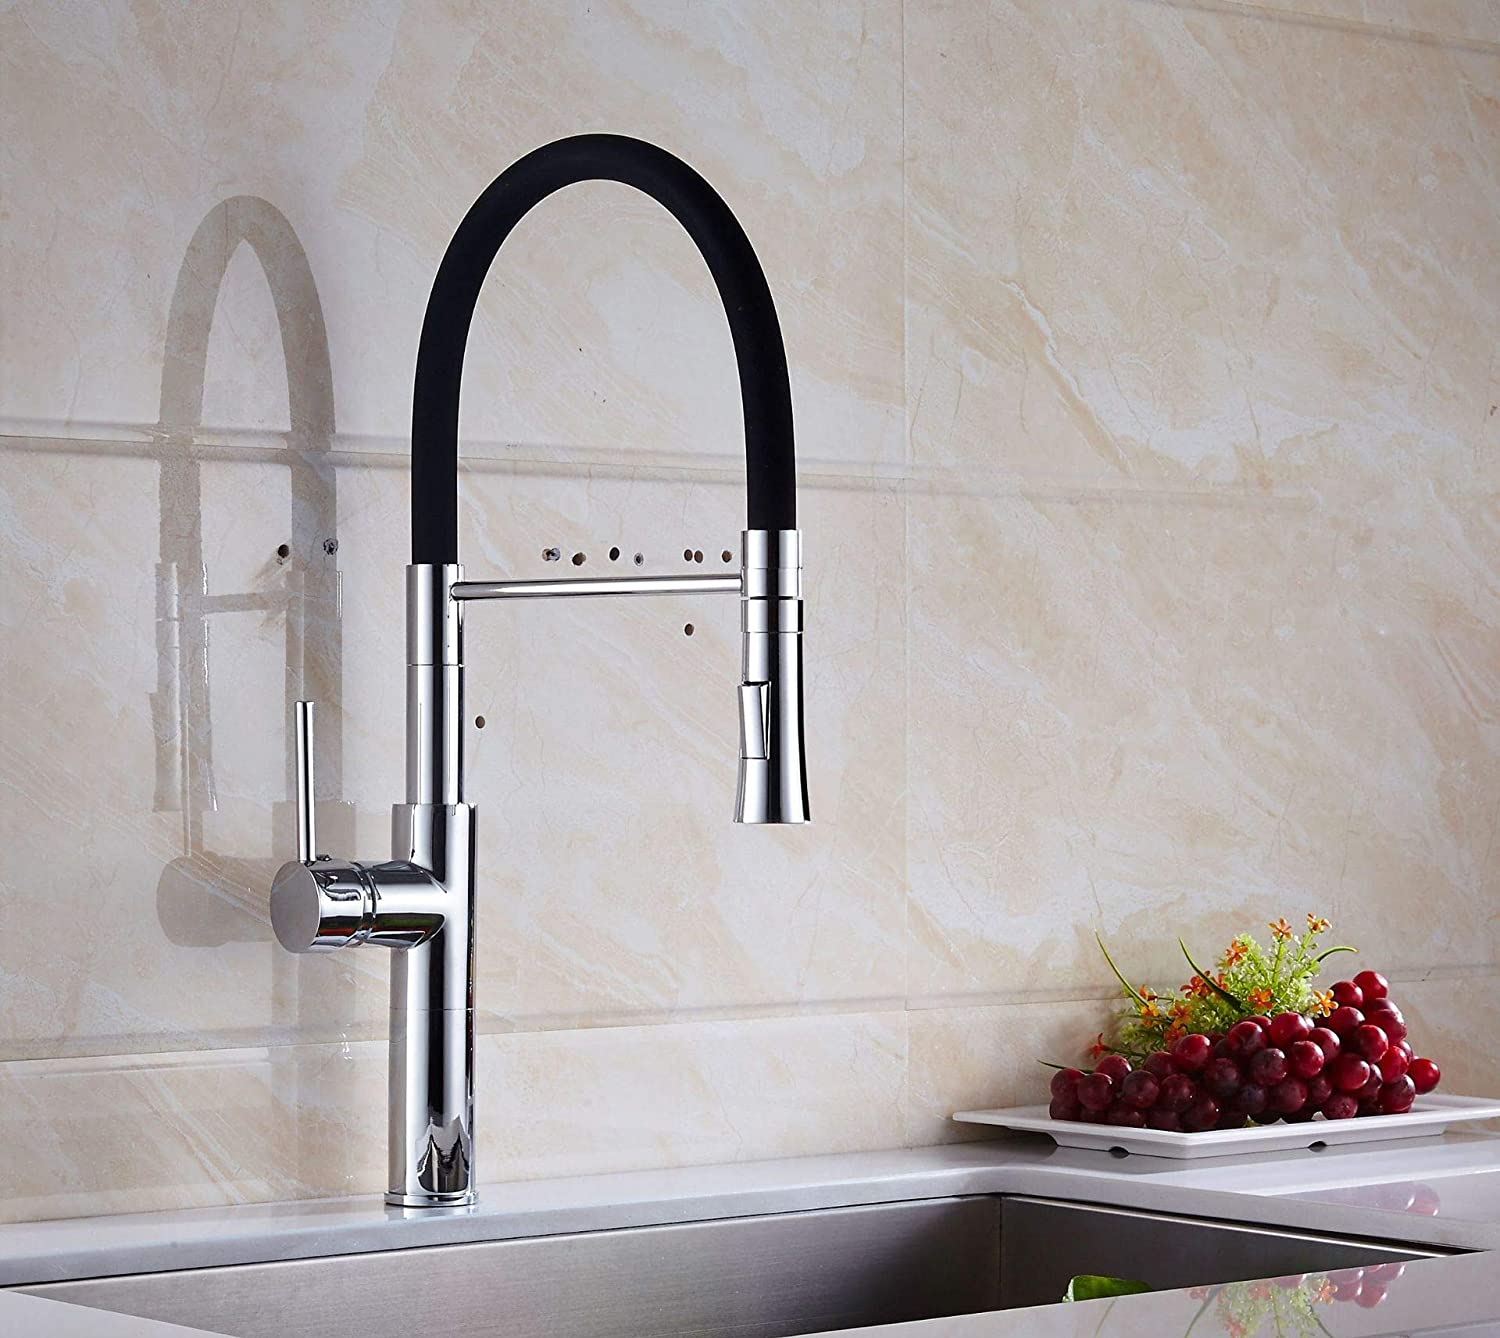 redOOY Taps Faucet Kitchen Kitchen Faucet Kitchen Faucet Basin Single Hole redating Spring Paint